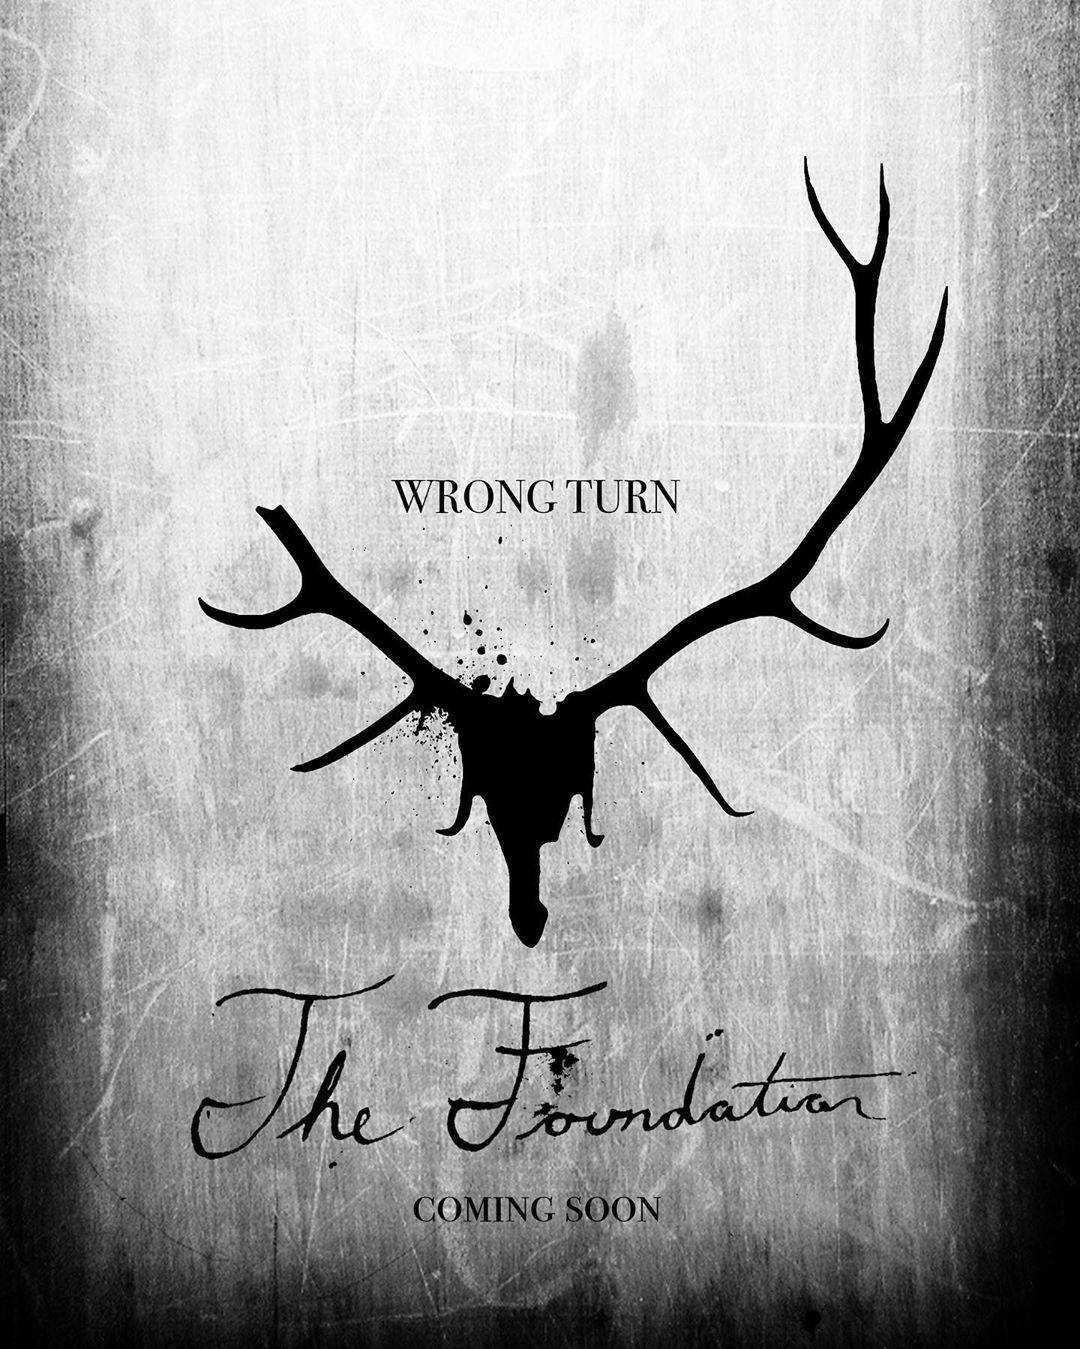 wrong turn the foundation film poster